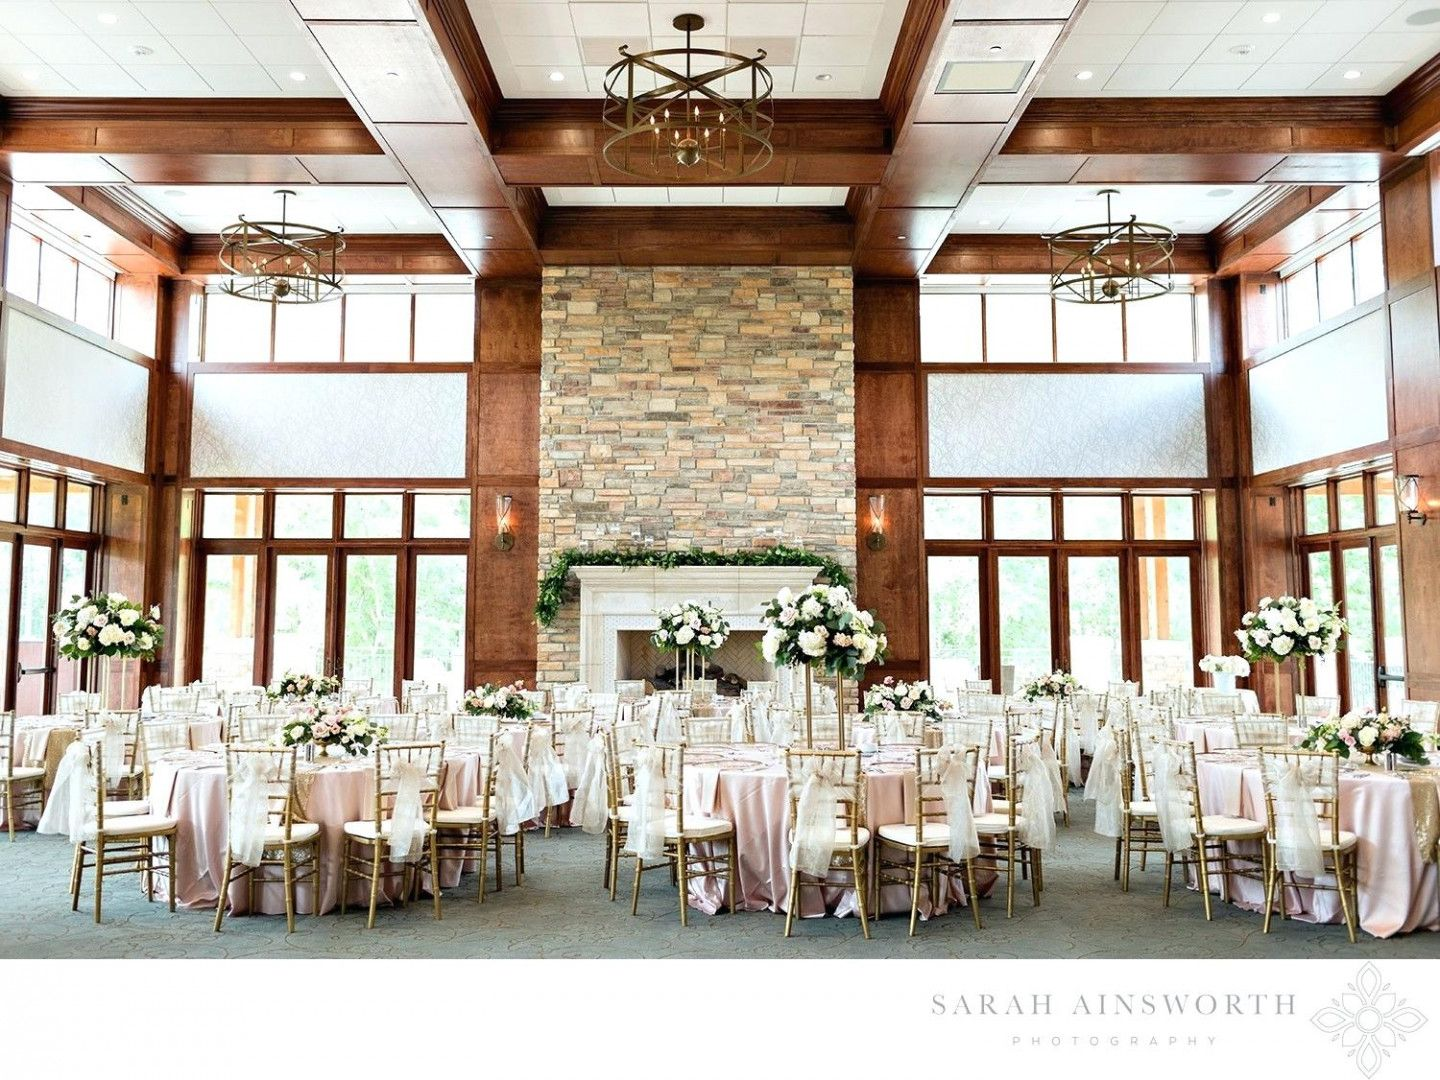 9 Things You Should Do In Cheap Wedding Venues In Houston